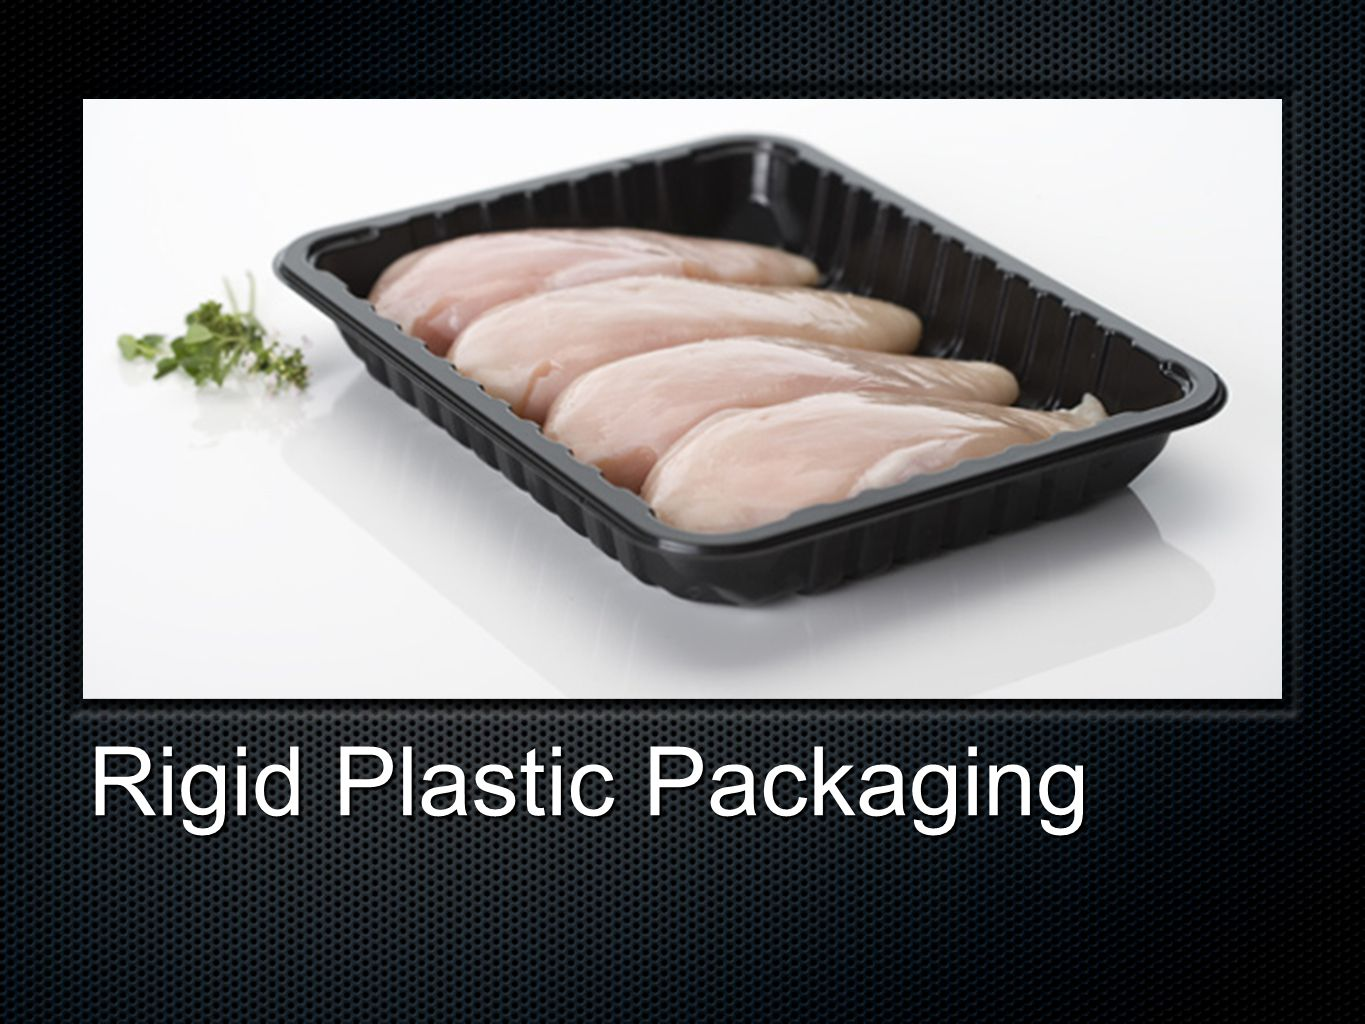 Rigid Plastic Packaging